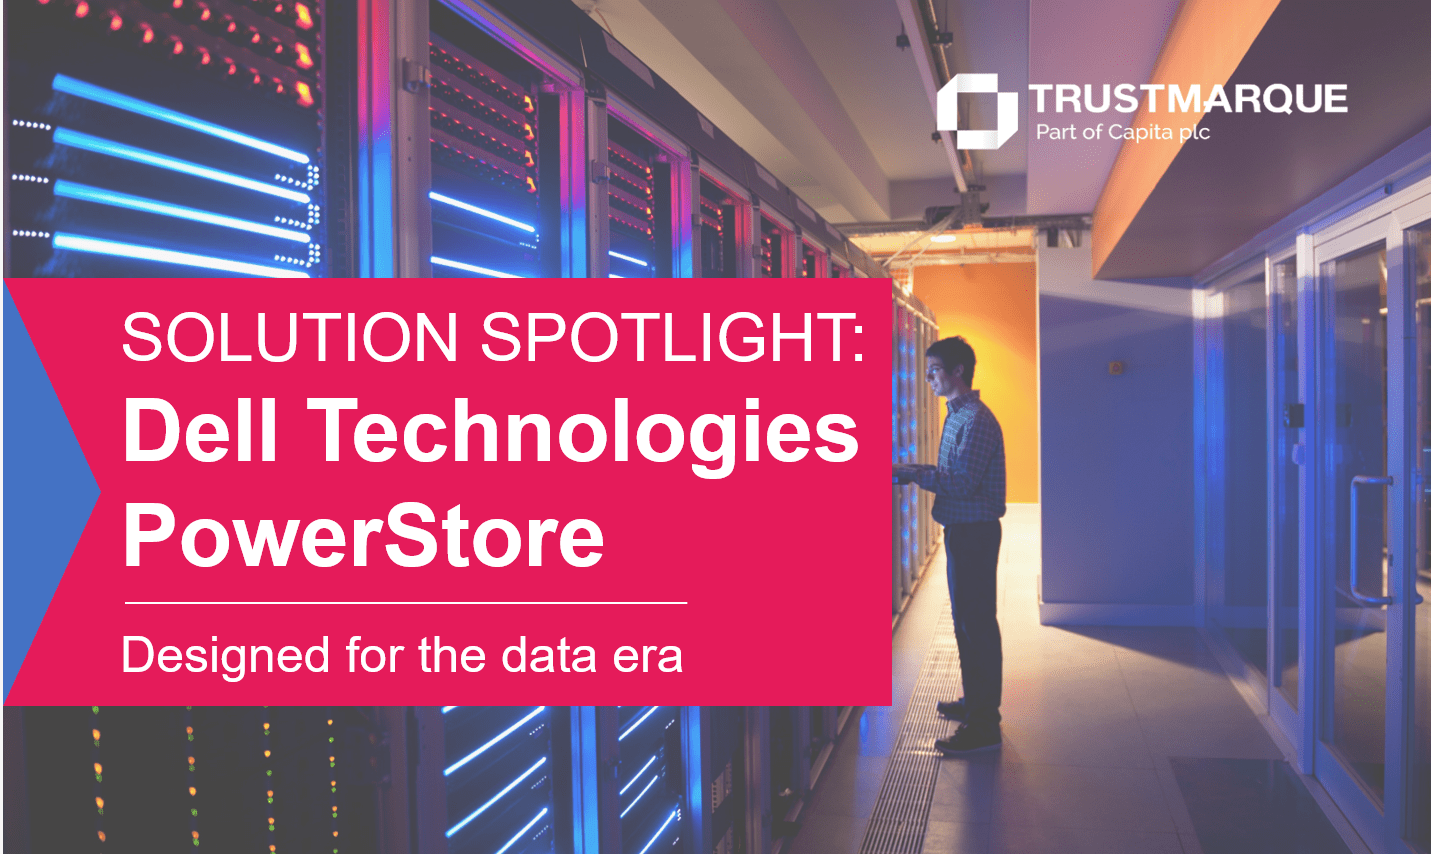 Solution Spotlight: Dell Technologies PowerStore